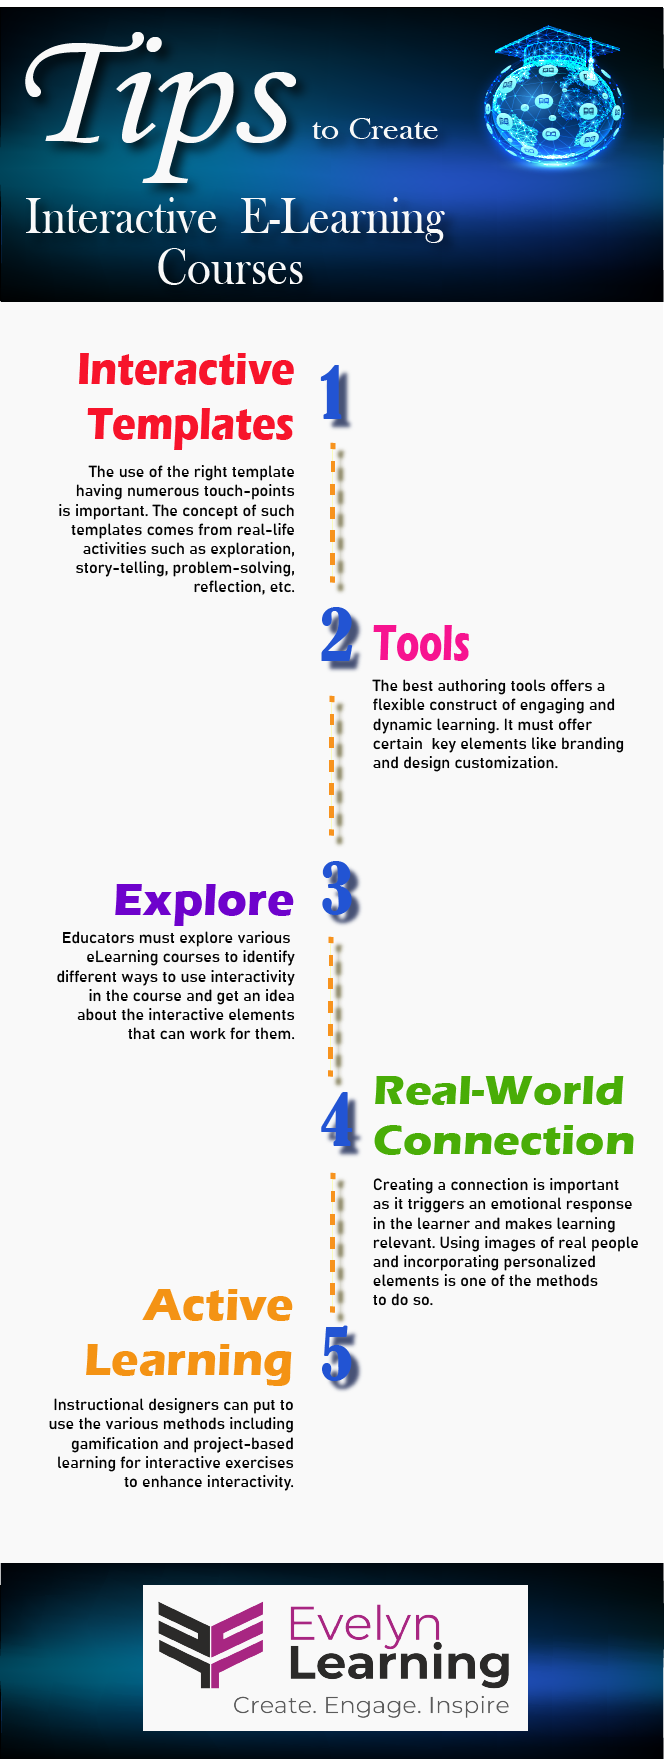 Tips to Create Interactive eLearning Courses